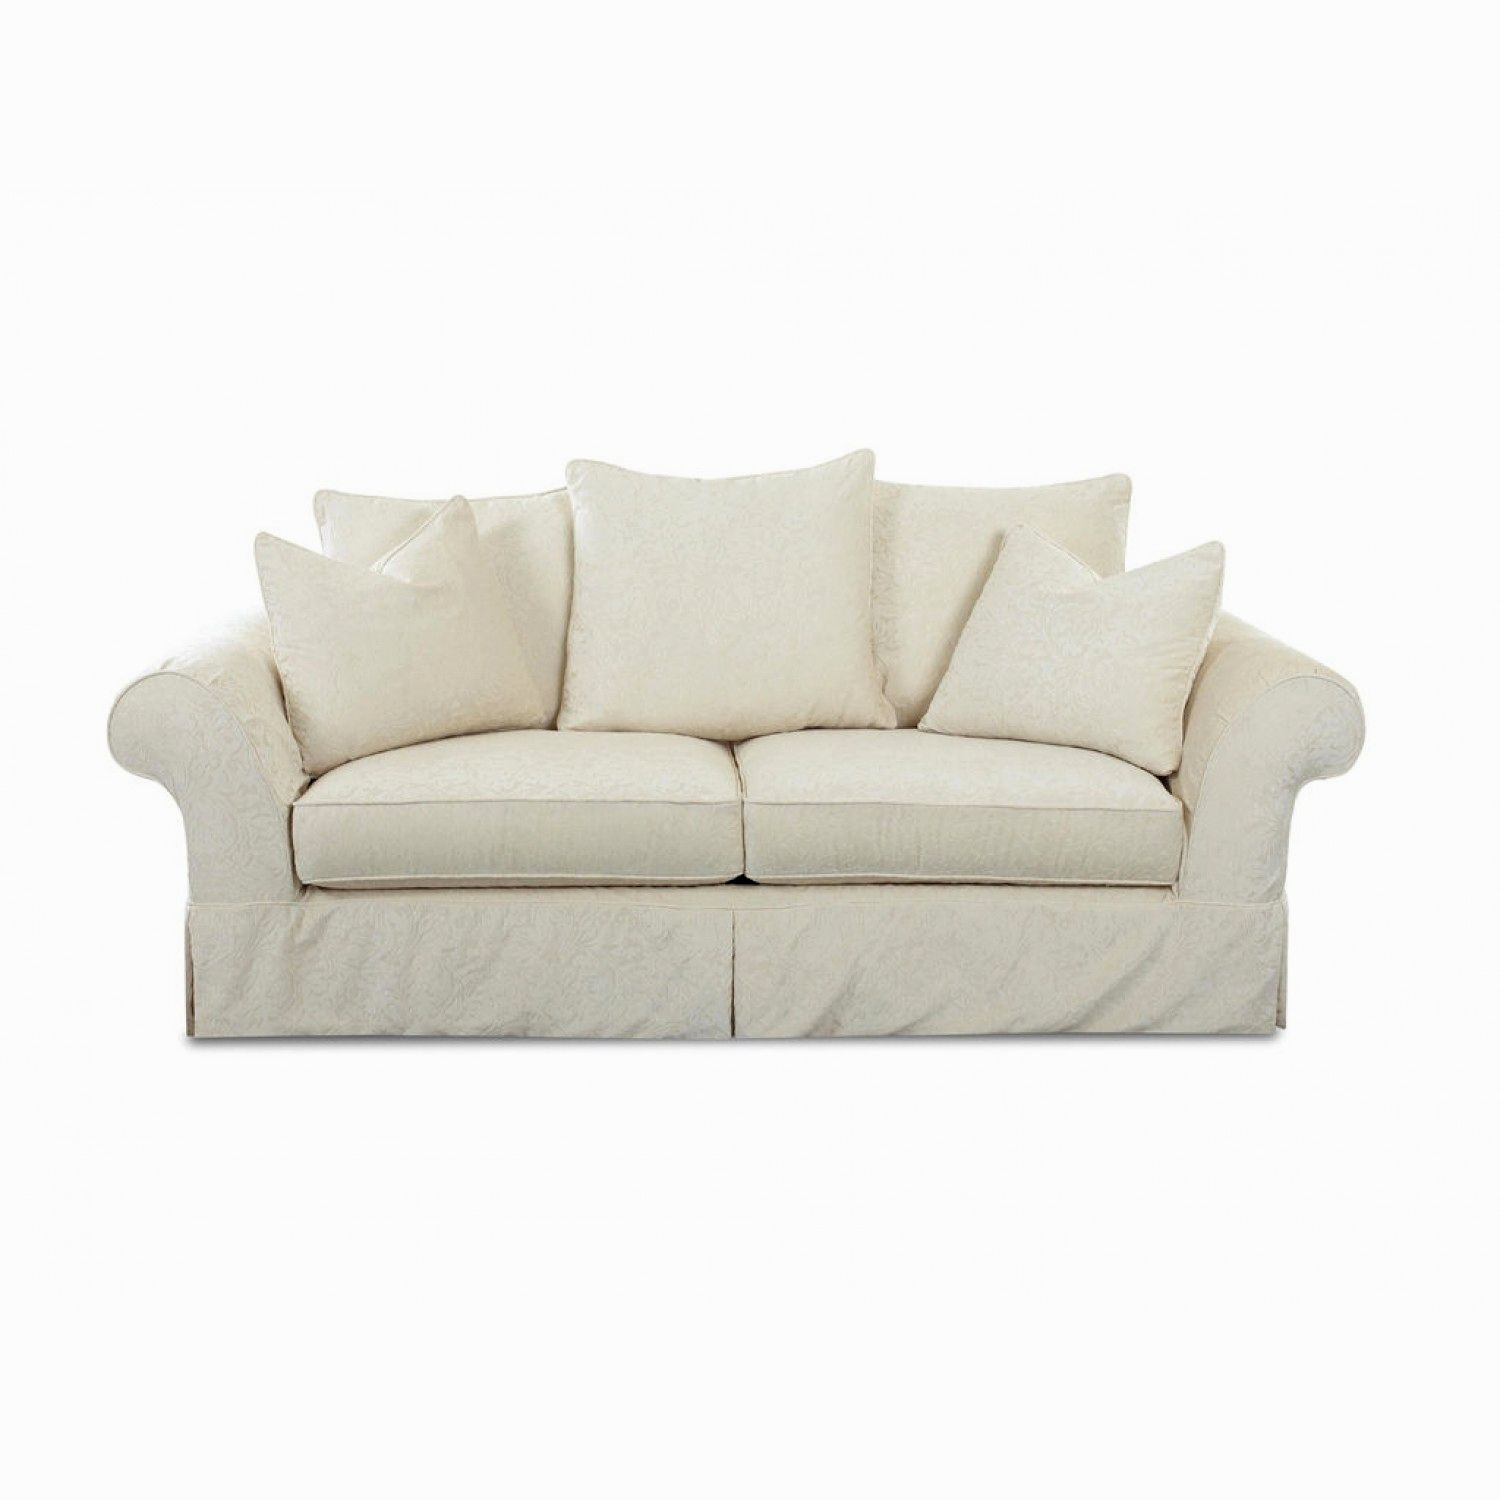 top ikea knislinge sofa online-Terrific Ikea Knislinge sofa Wallpaper